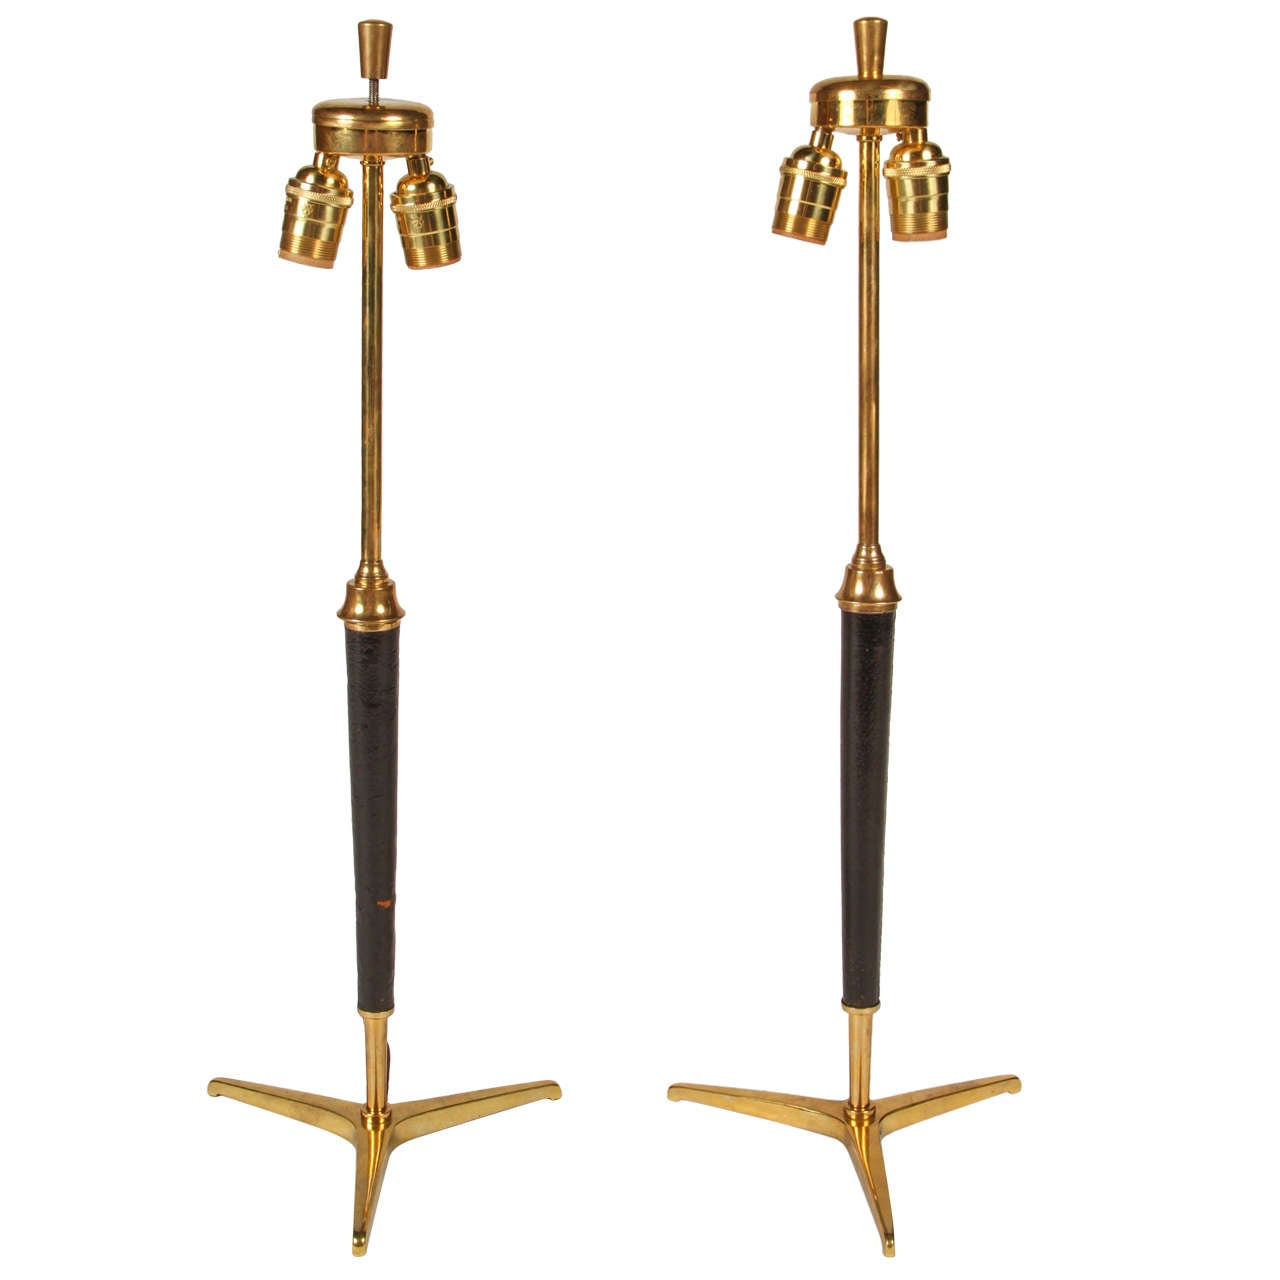 Pair of Jacques Adnet Lamps in Brass and Leather